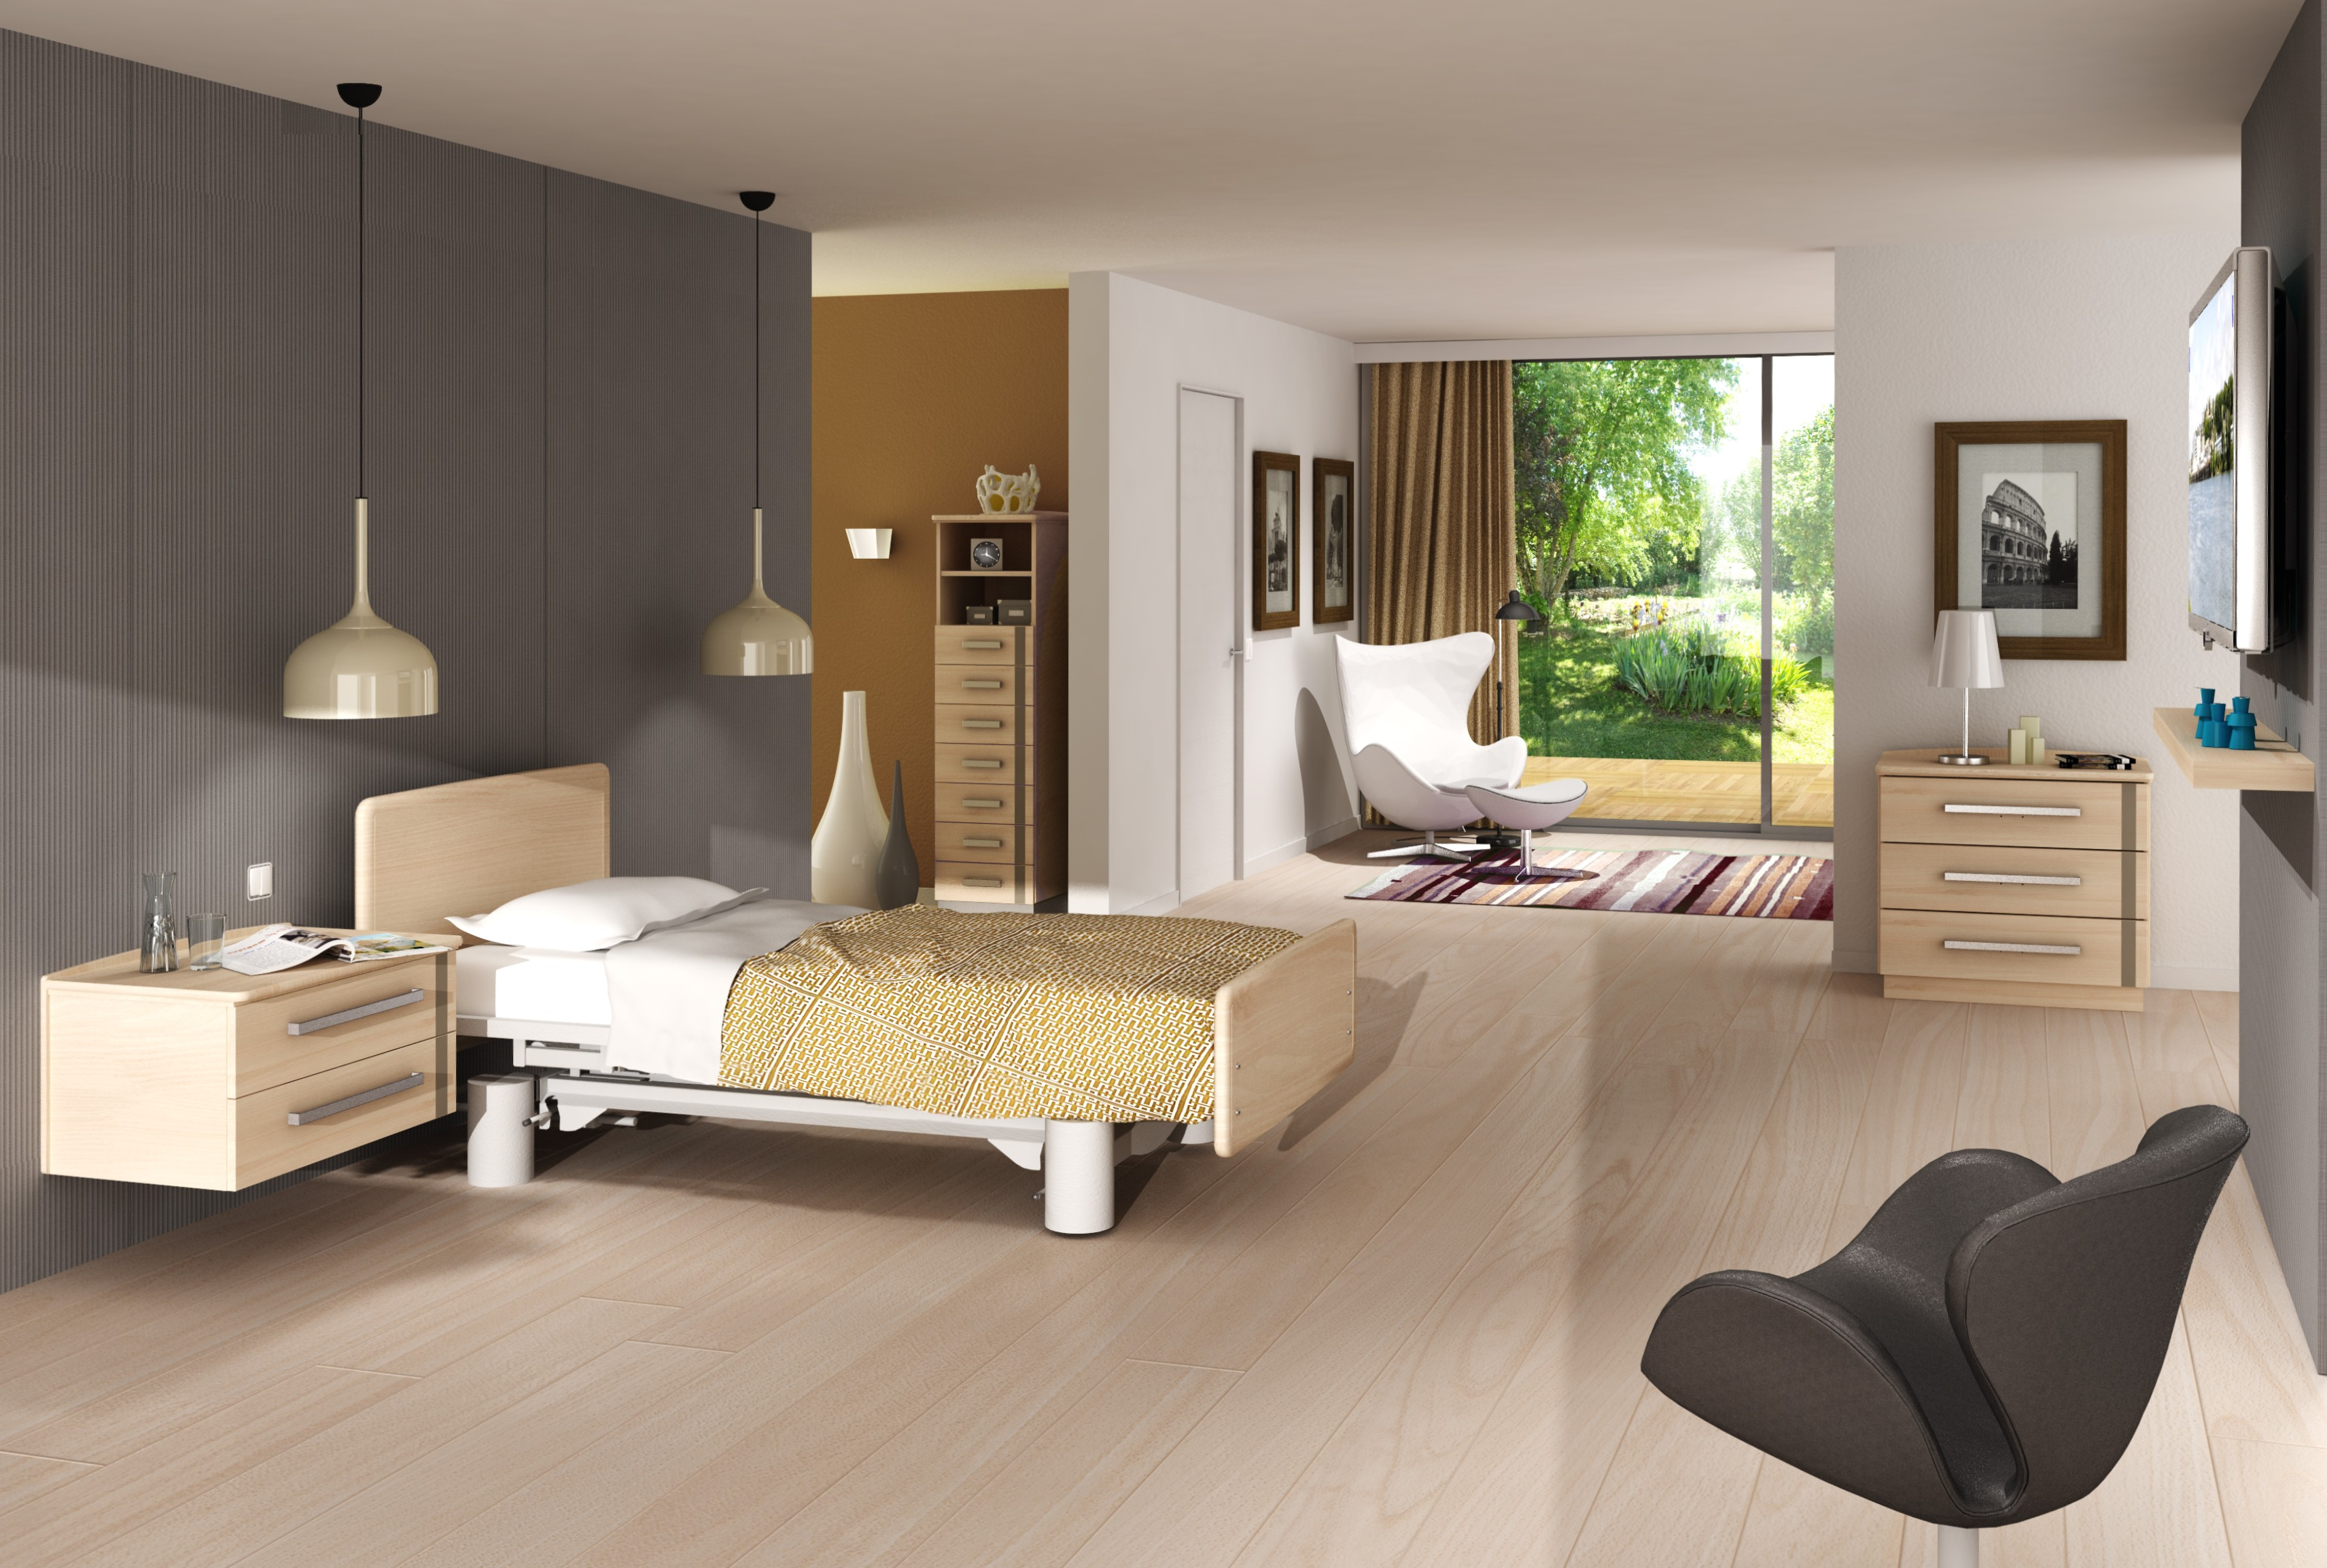 mobiler de chambre m dicalis e collection aubance sotec m dical fabricant. Black Bedroom Furniture Sets. Home Design Ideas